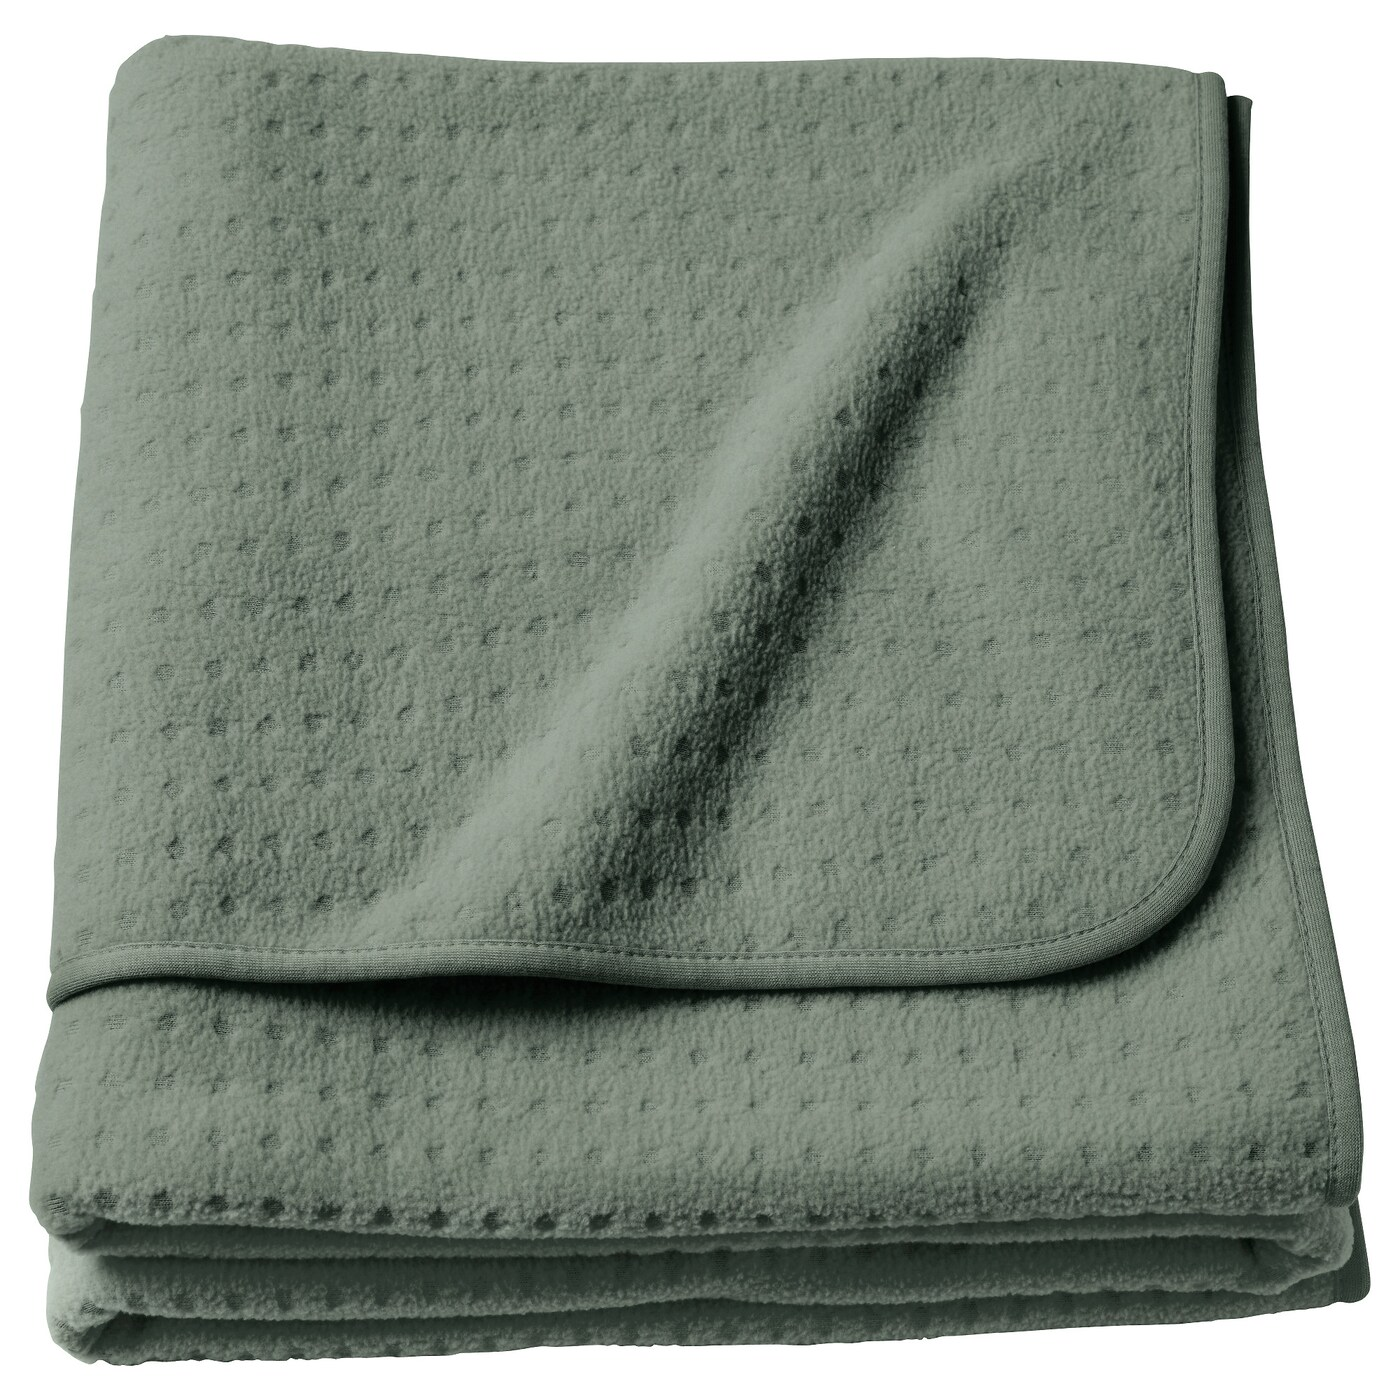 IKEA YPPERLIG throw The fleece throw feels soft against your skin and can be machine washed.